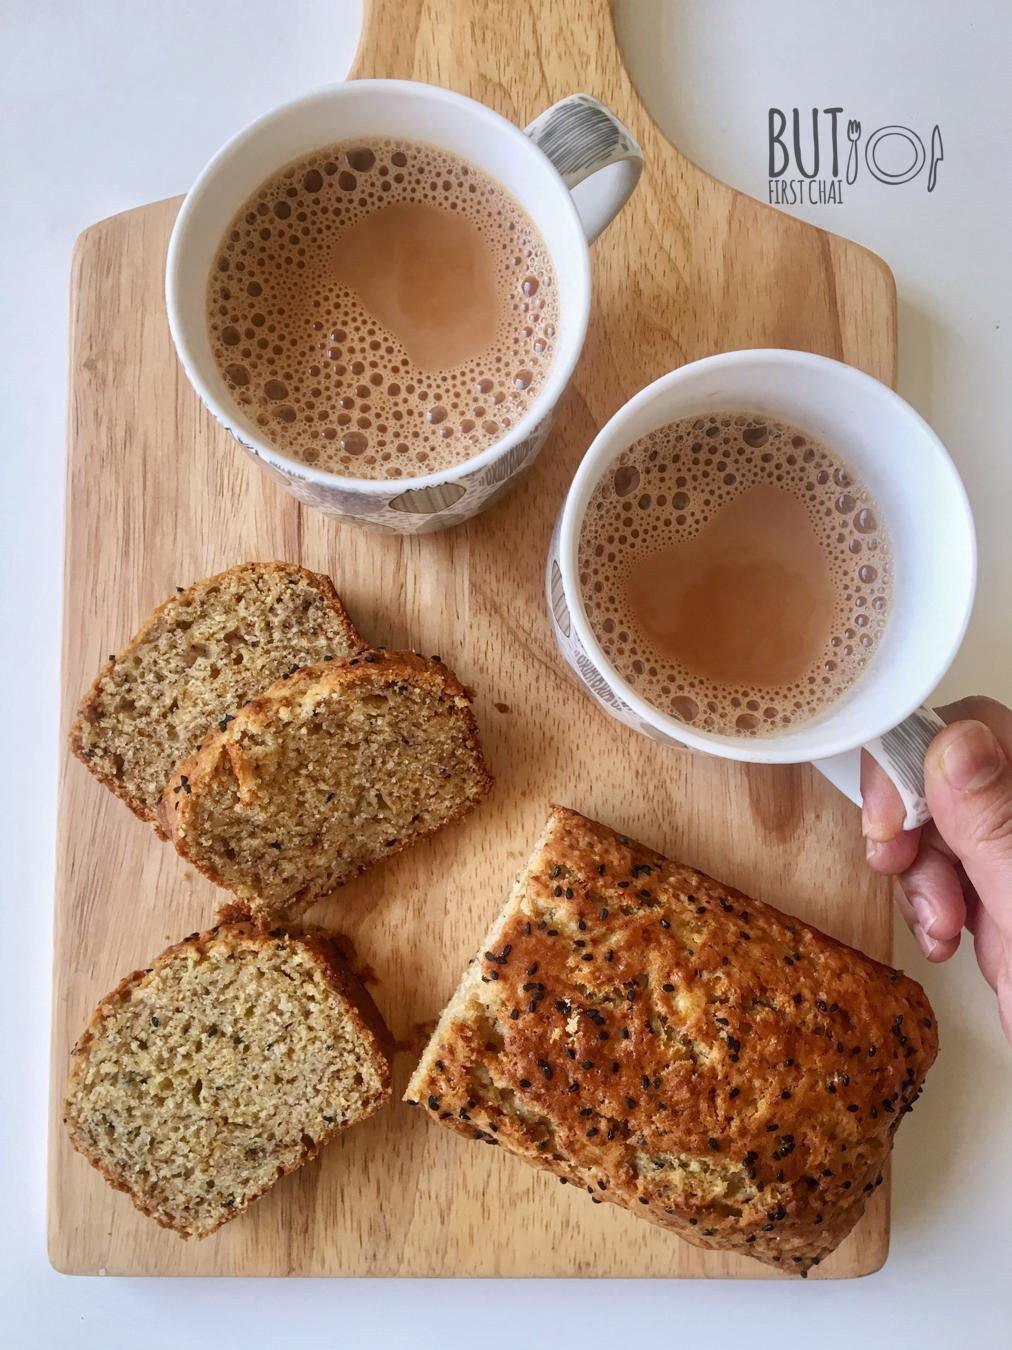 Banana Bread with Aniseed and Nigella seeds | First bake in my new Oven